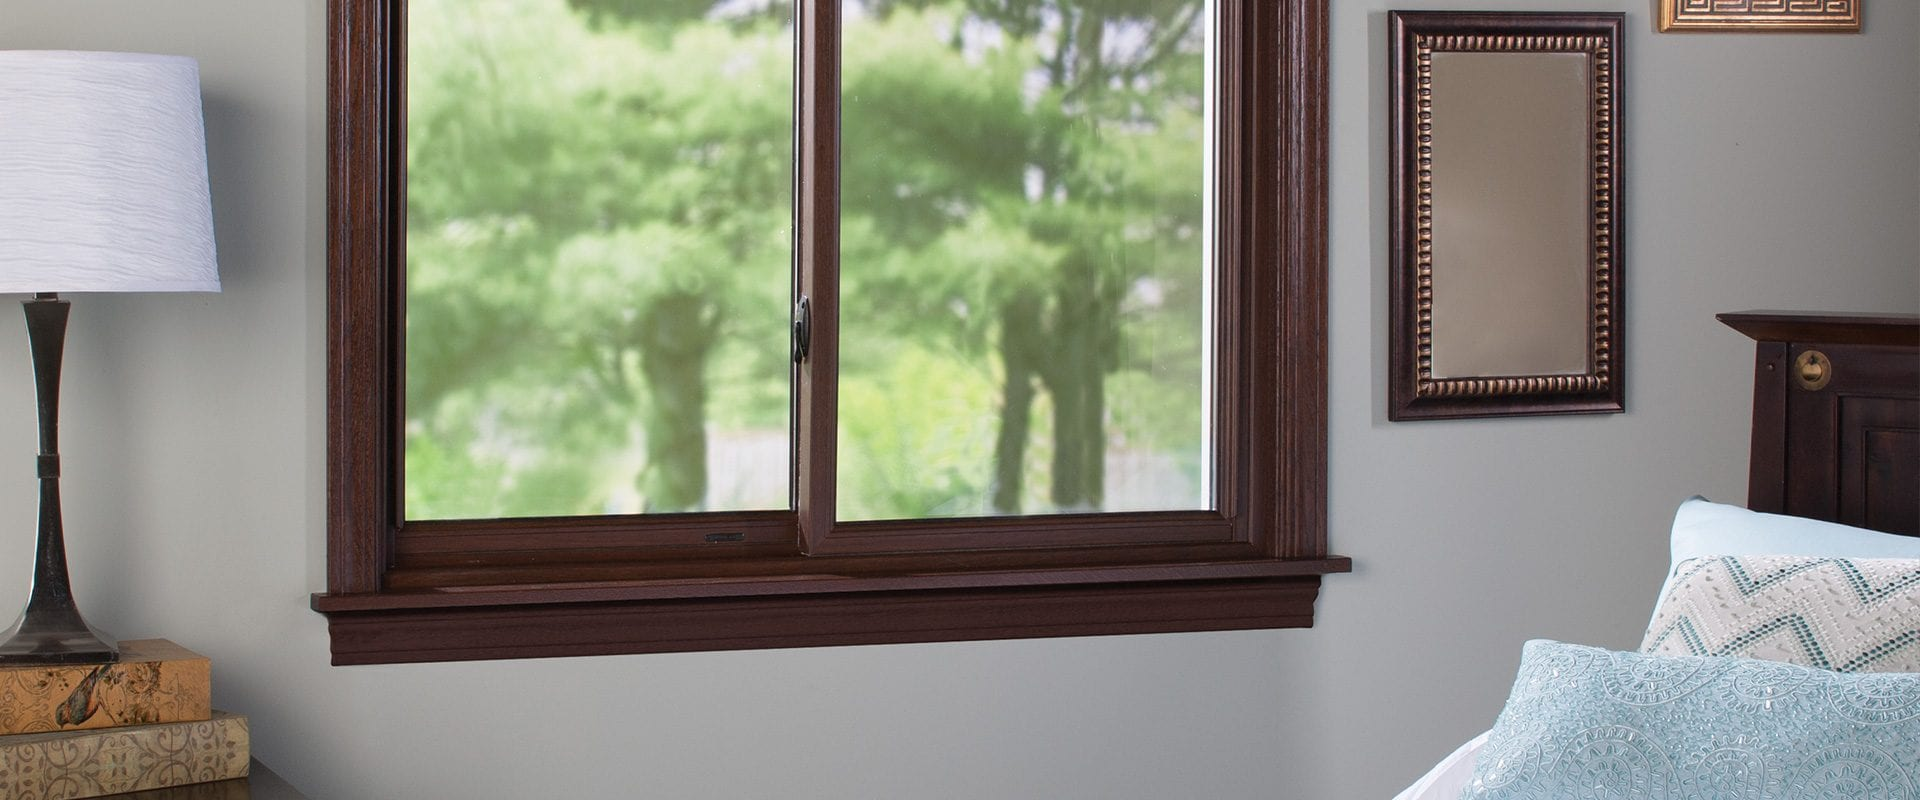 Quality, Energy Efficient Vinyl Sliding Windows by BlackBeryy